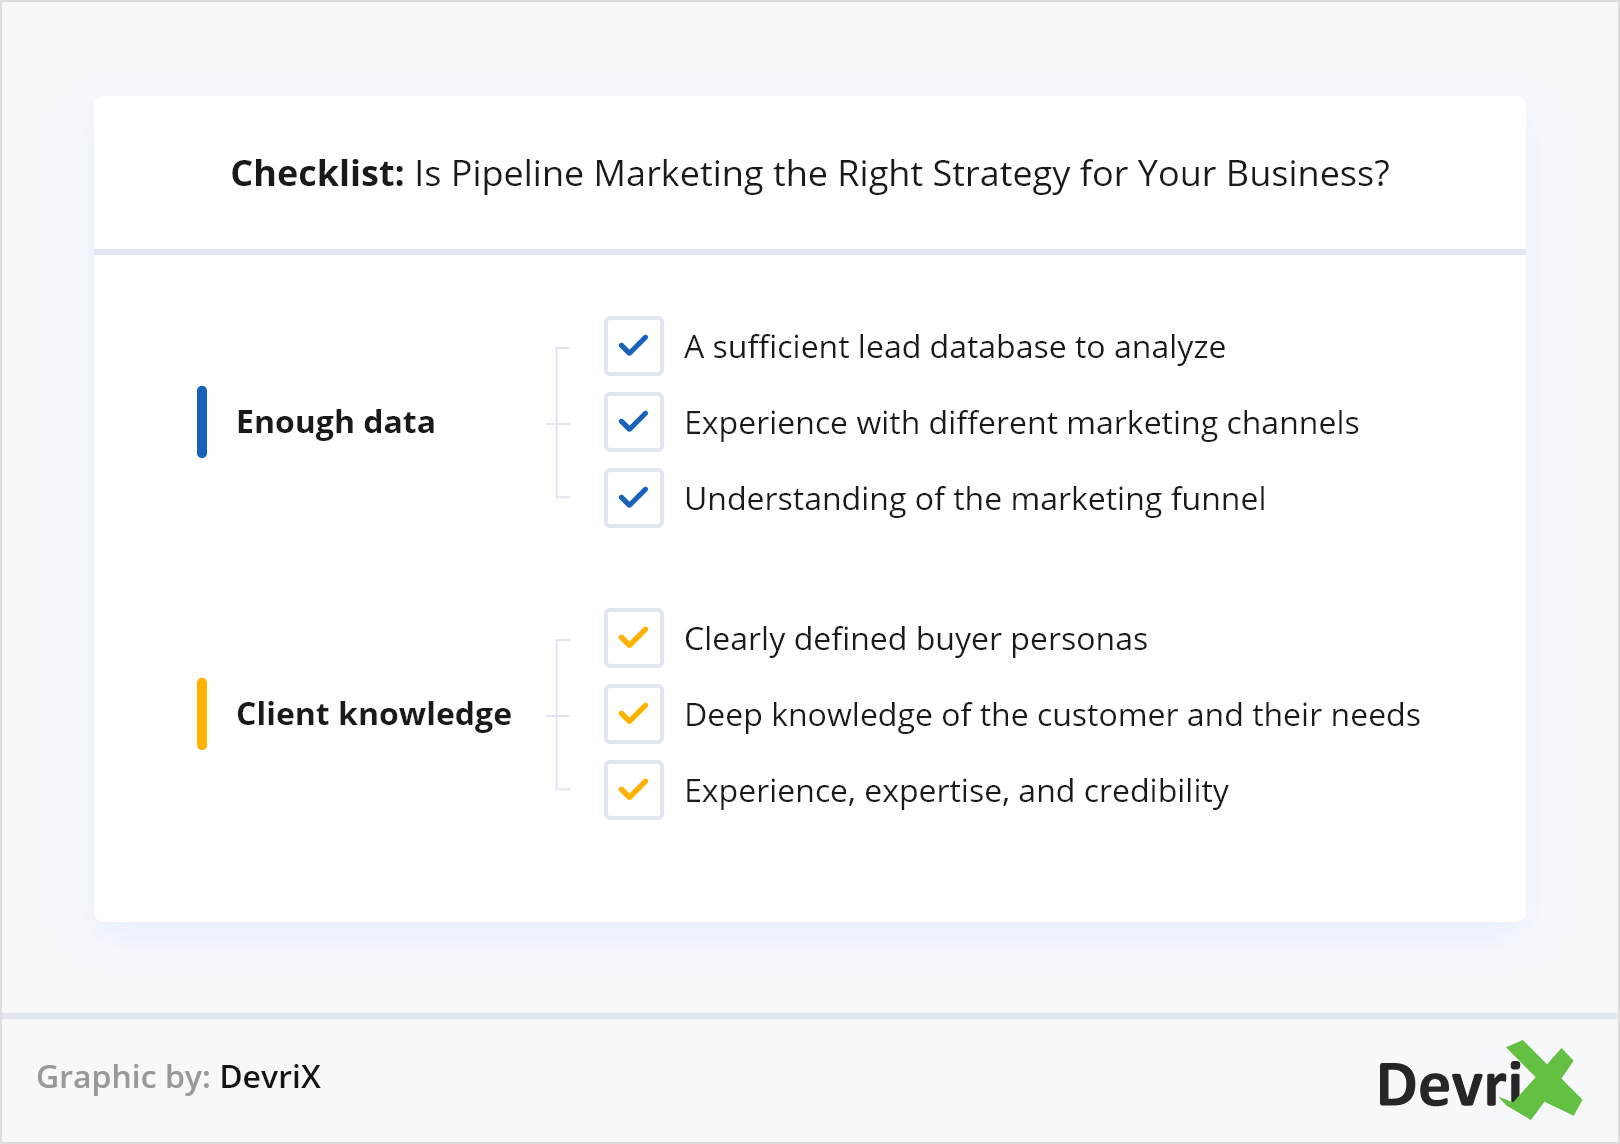 Checklist Is Pipeline Marketing the Right Strategy for Your Business